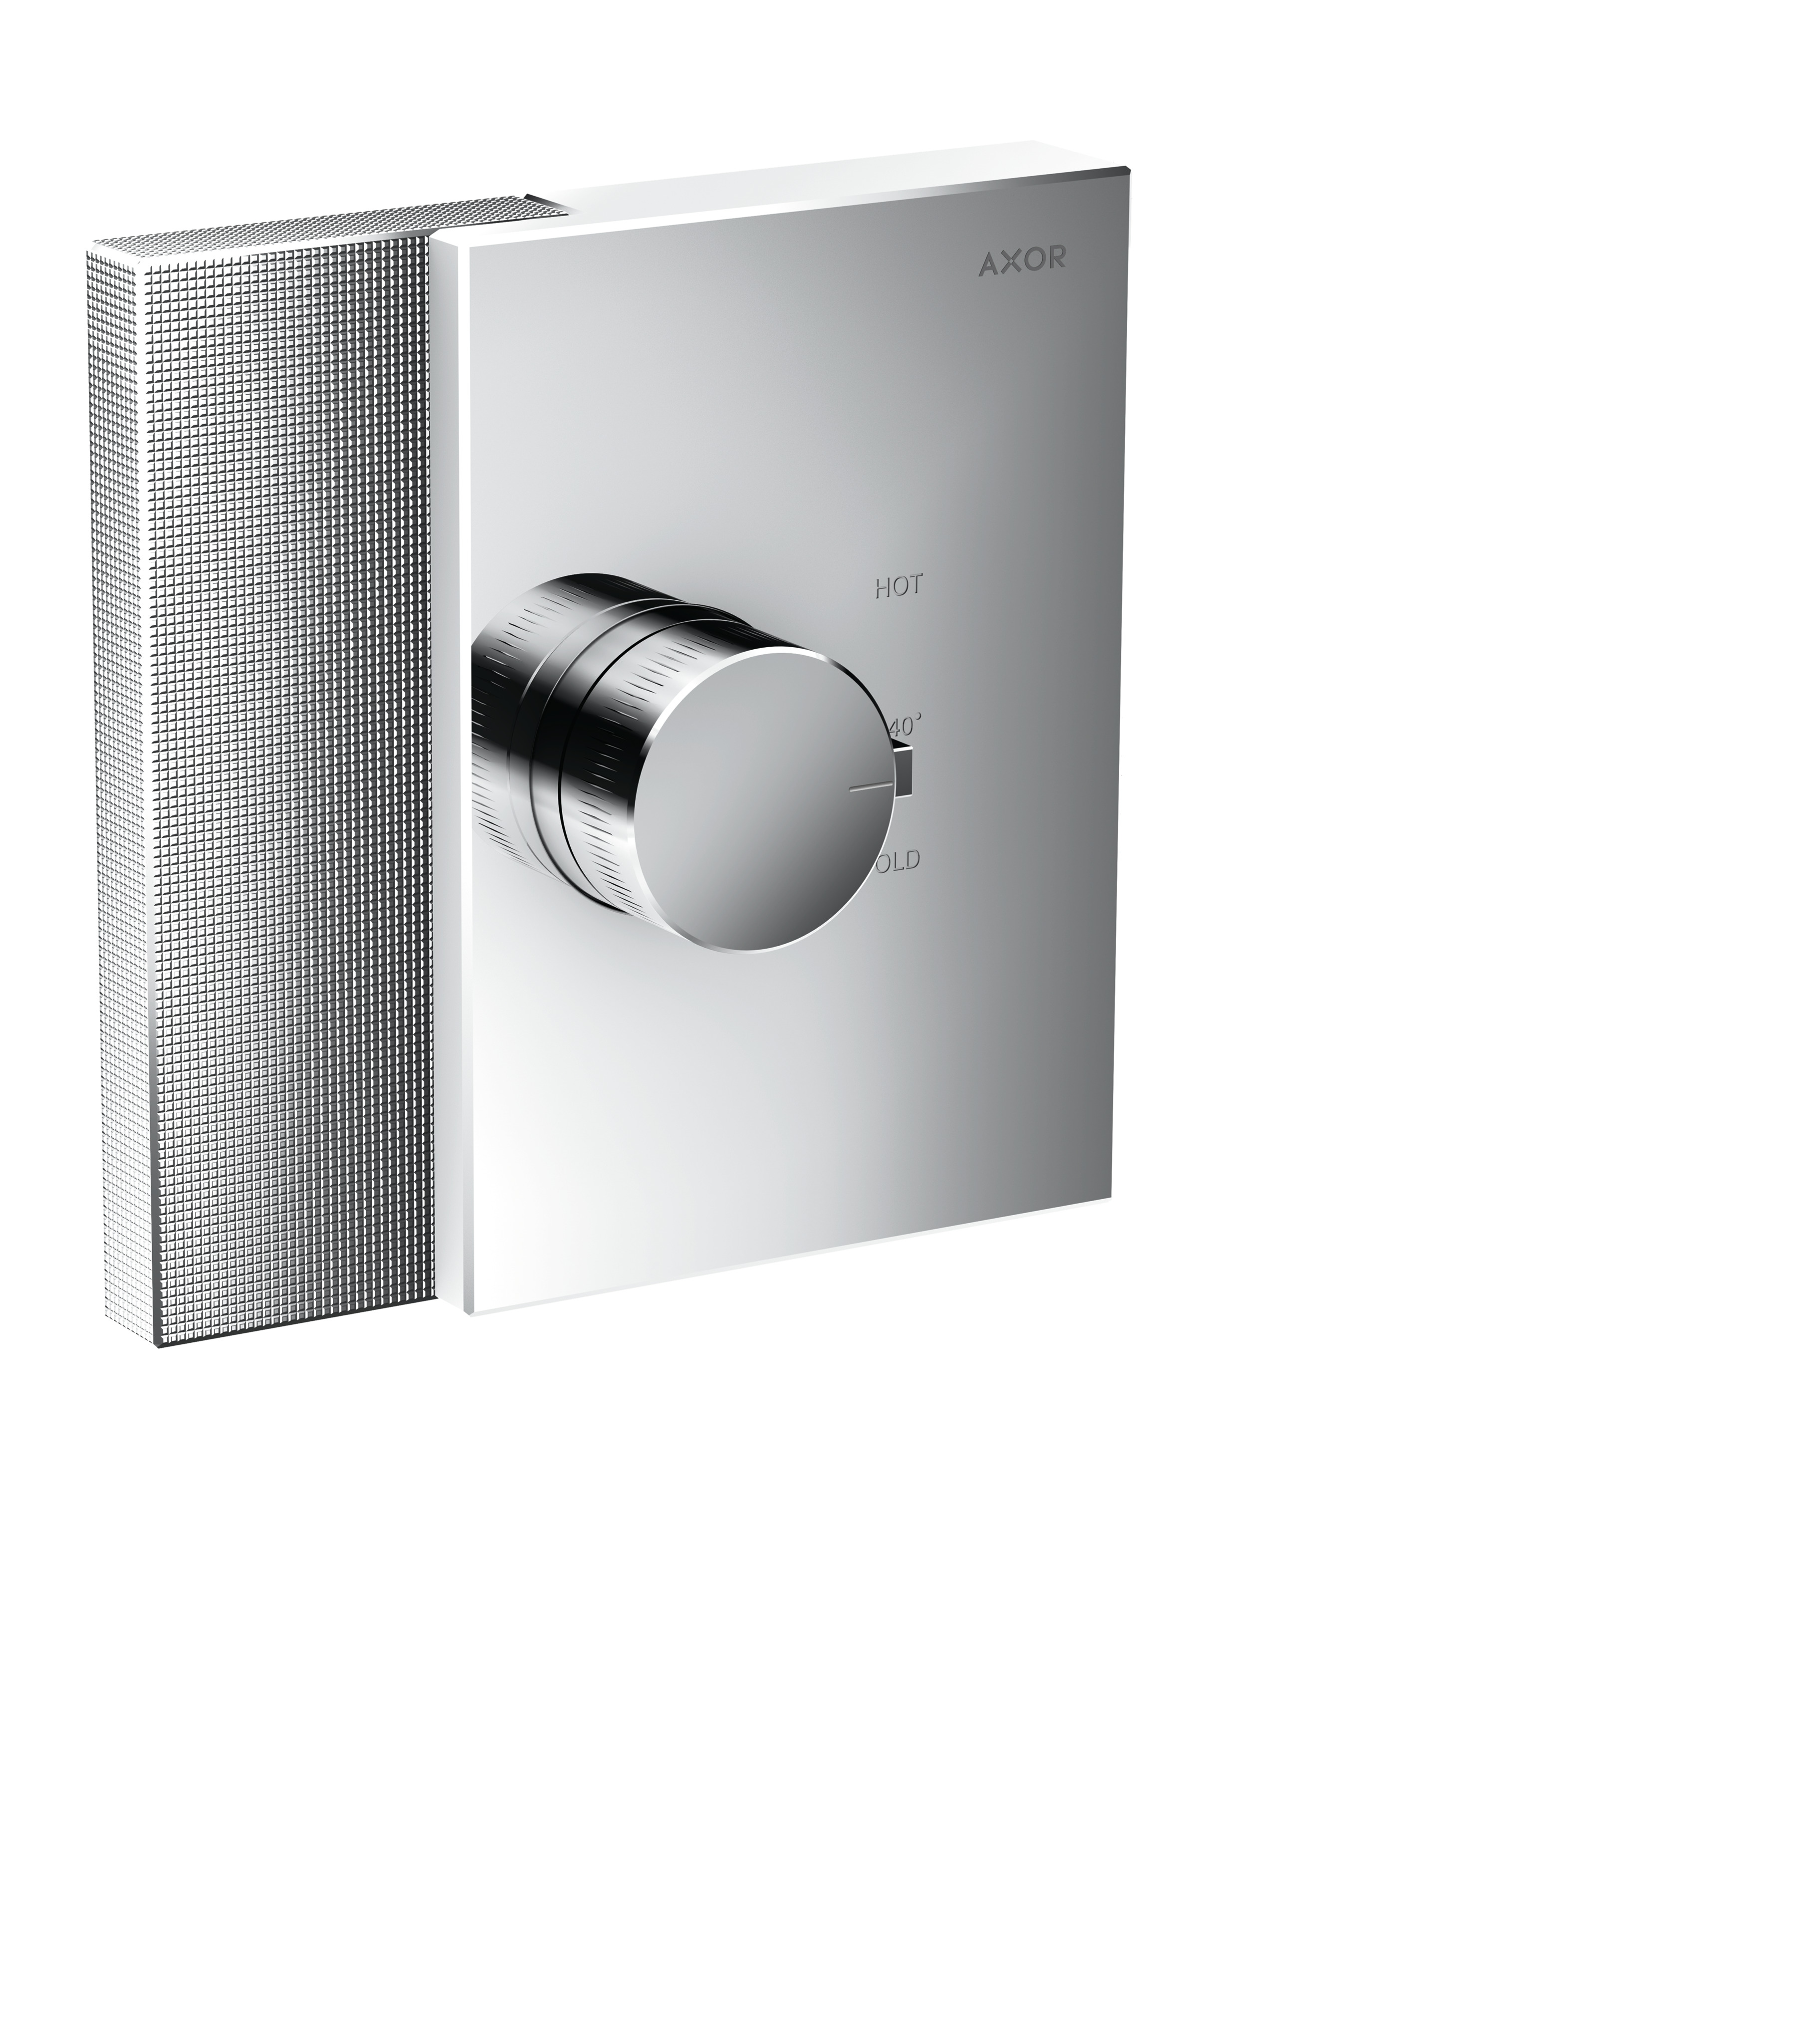 hansgrohe AXOR Edge 46741000 und 46740000 Thermostat HighFlow Unterputz